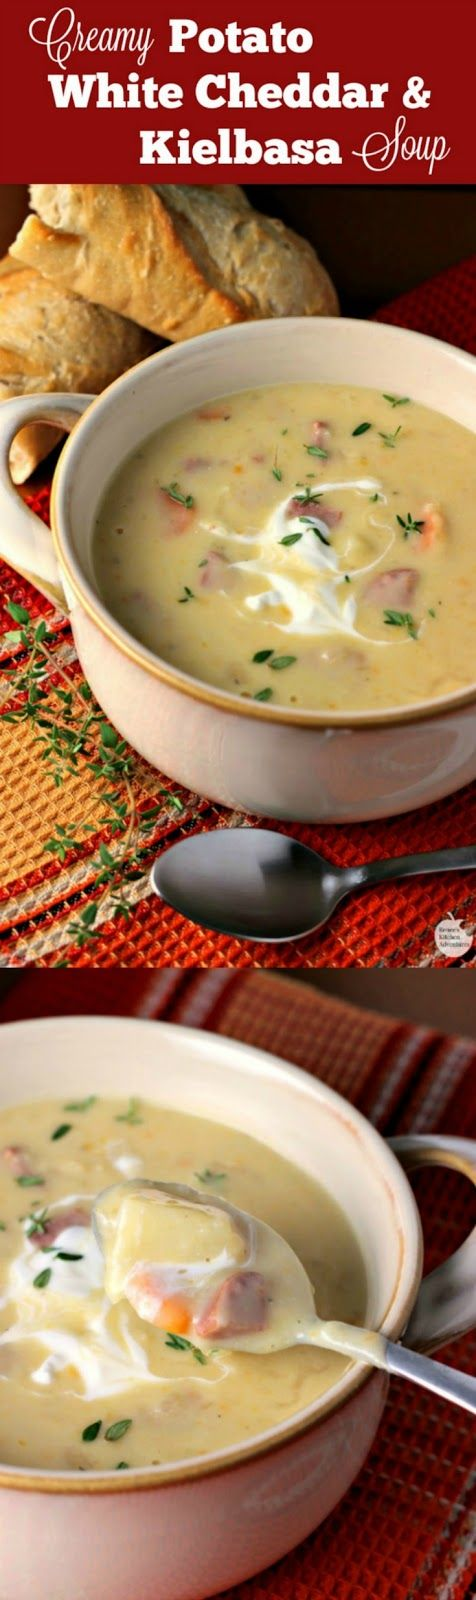 Creamy Potato, White Cheddar, and Kielbasa Soup | by Renee's Kitchen Adventures - msg 4 21+ Easy, hearty soup recipe perfect for the cooler weather!  A taste of old world Oktoberfest #OktoberontheFarm ad